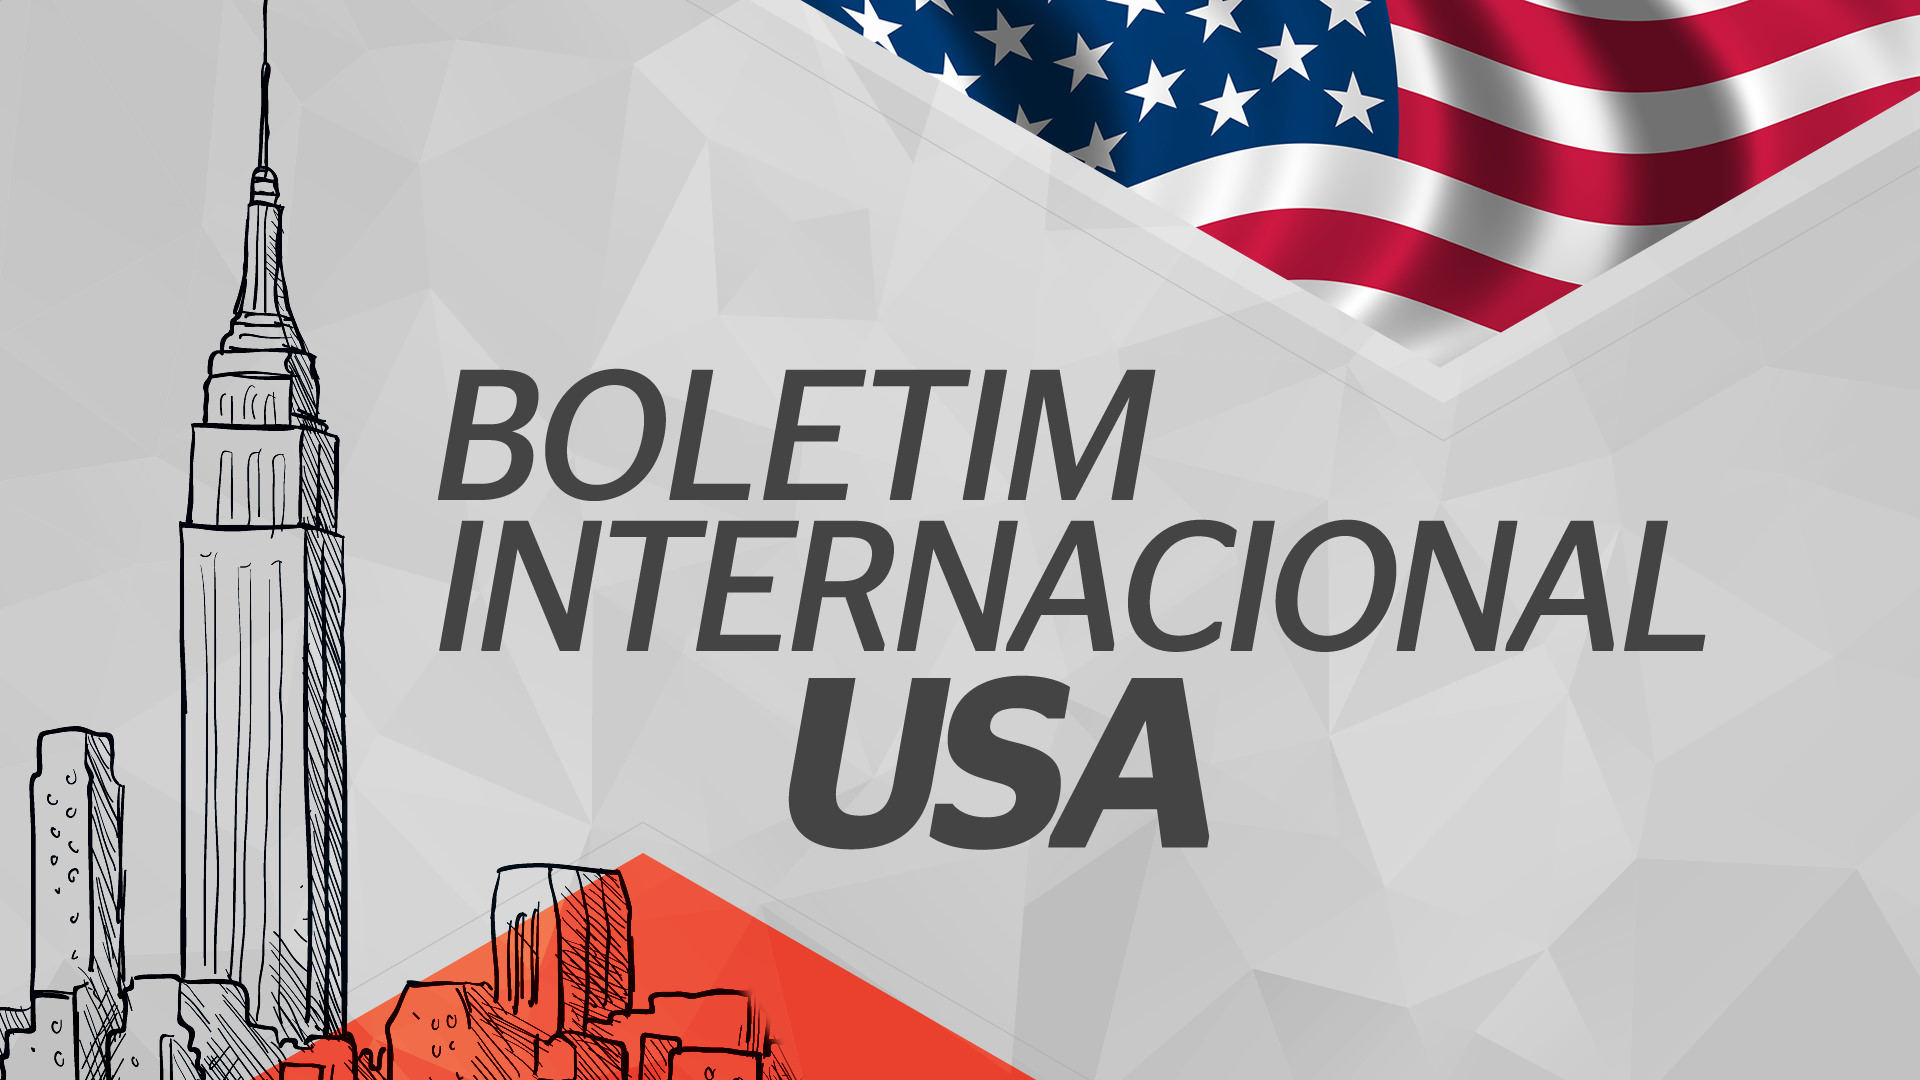 Boletim Internacional